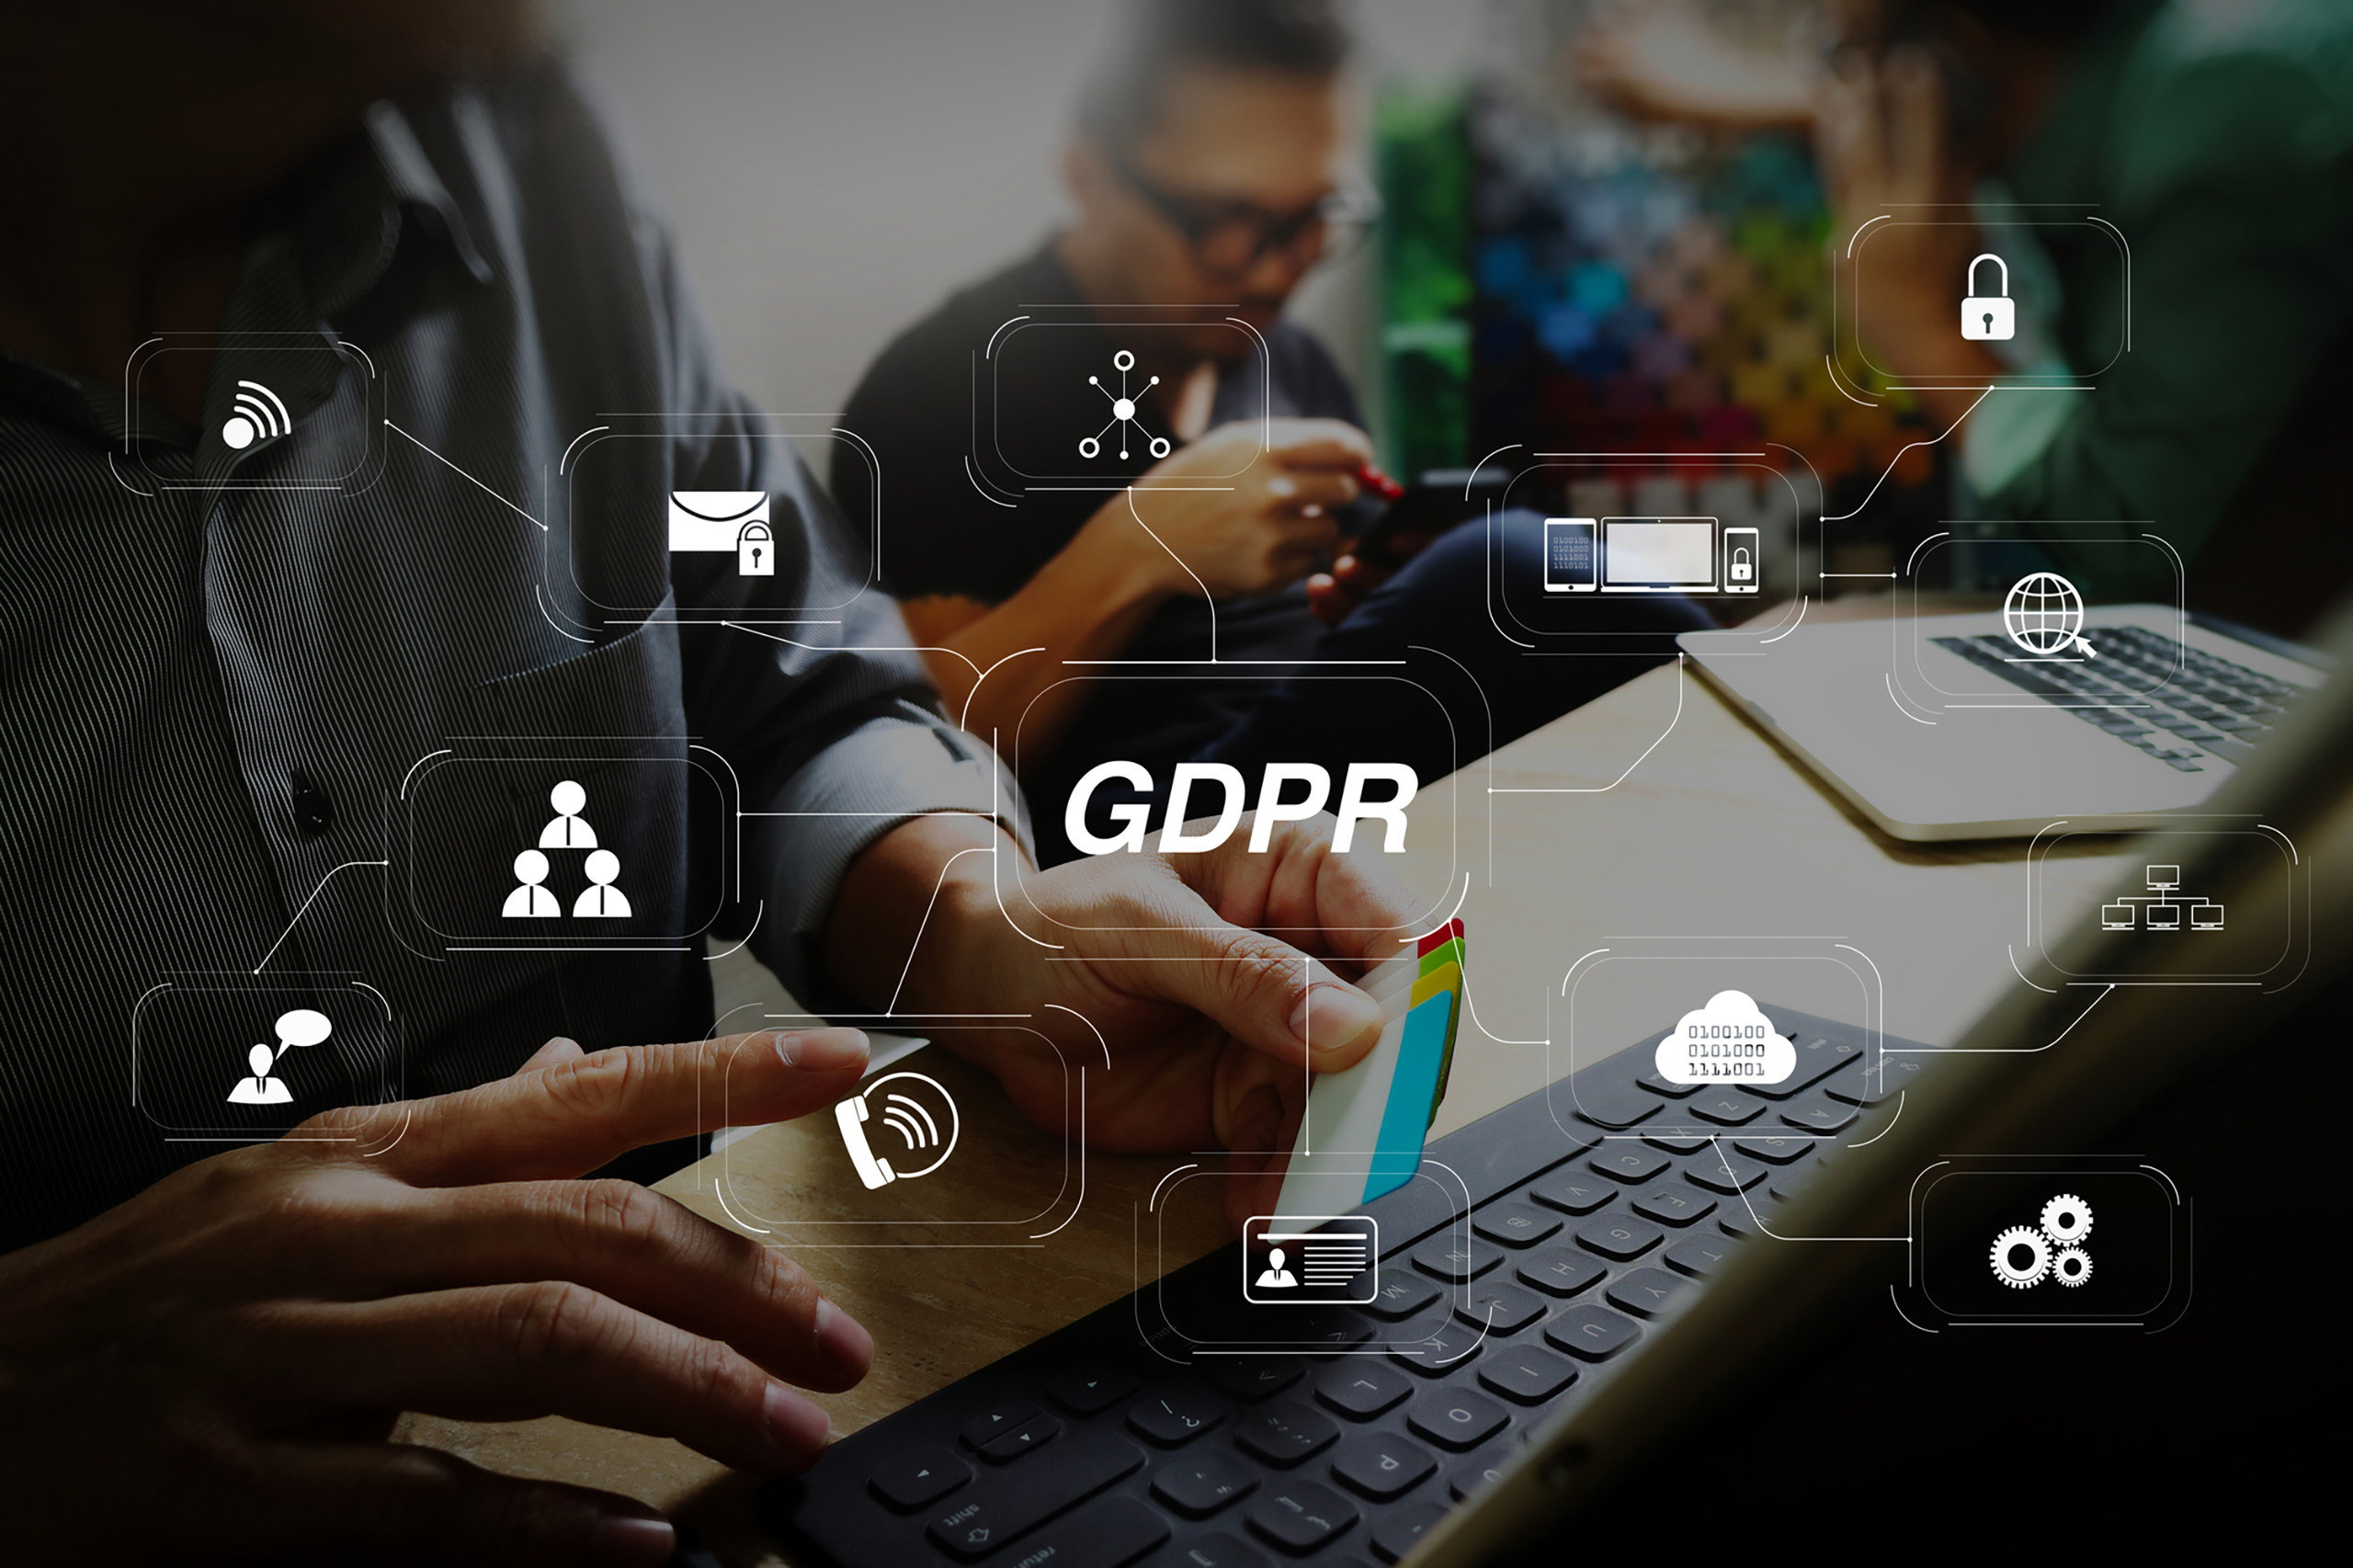 CCPA vs GDPR: What's the Difference?